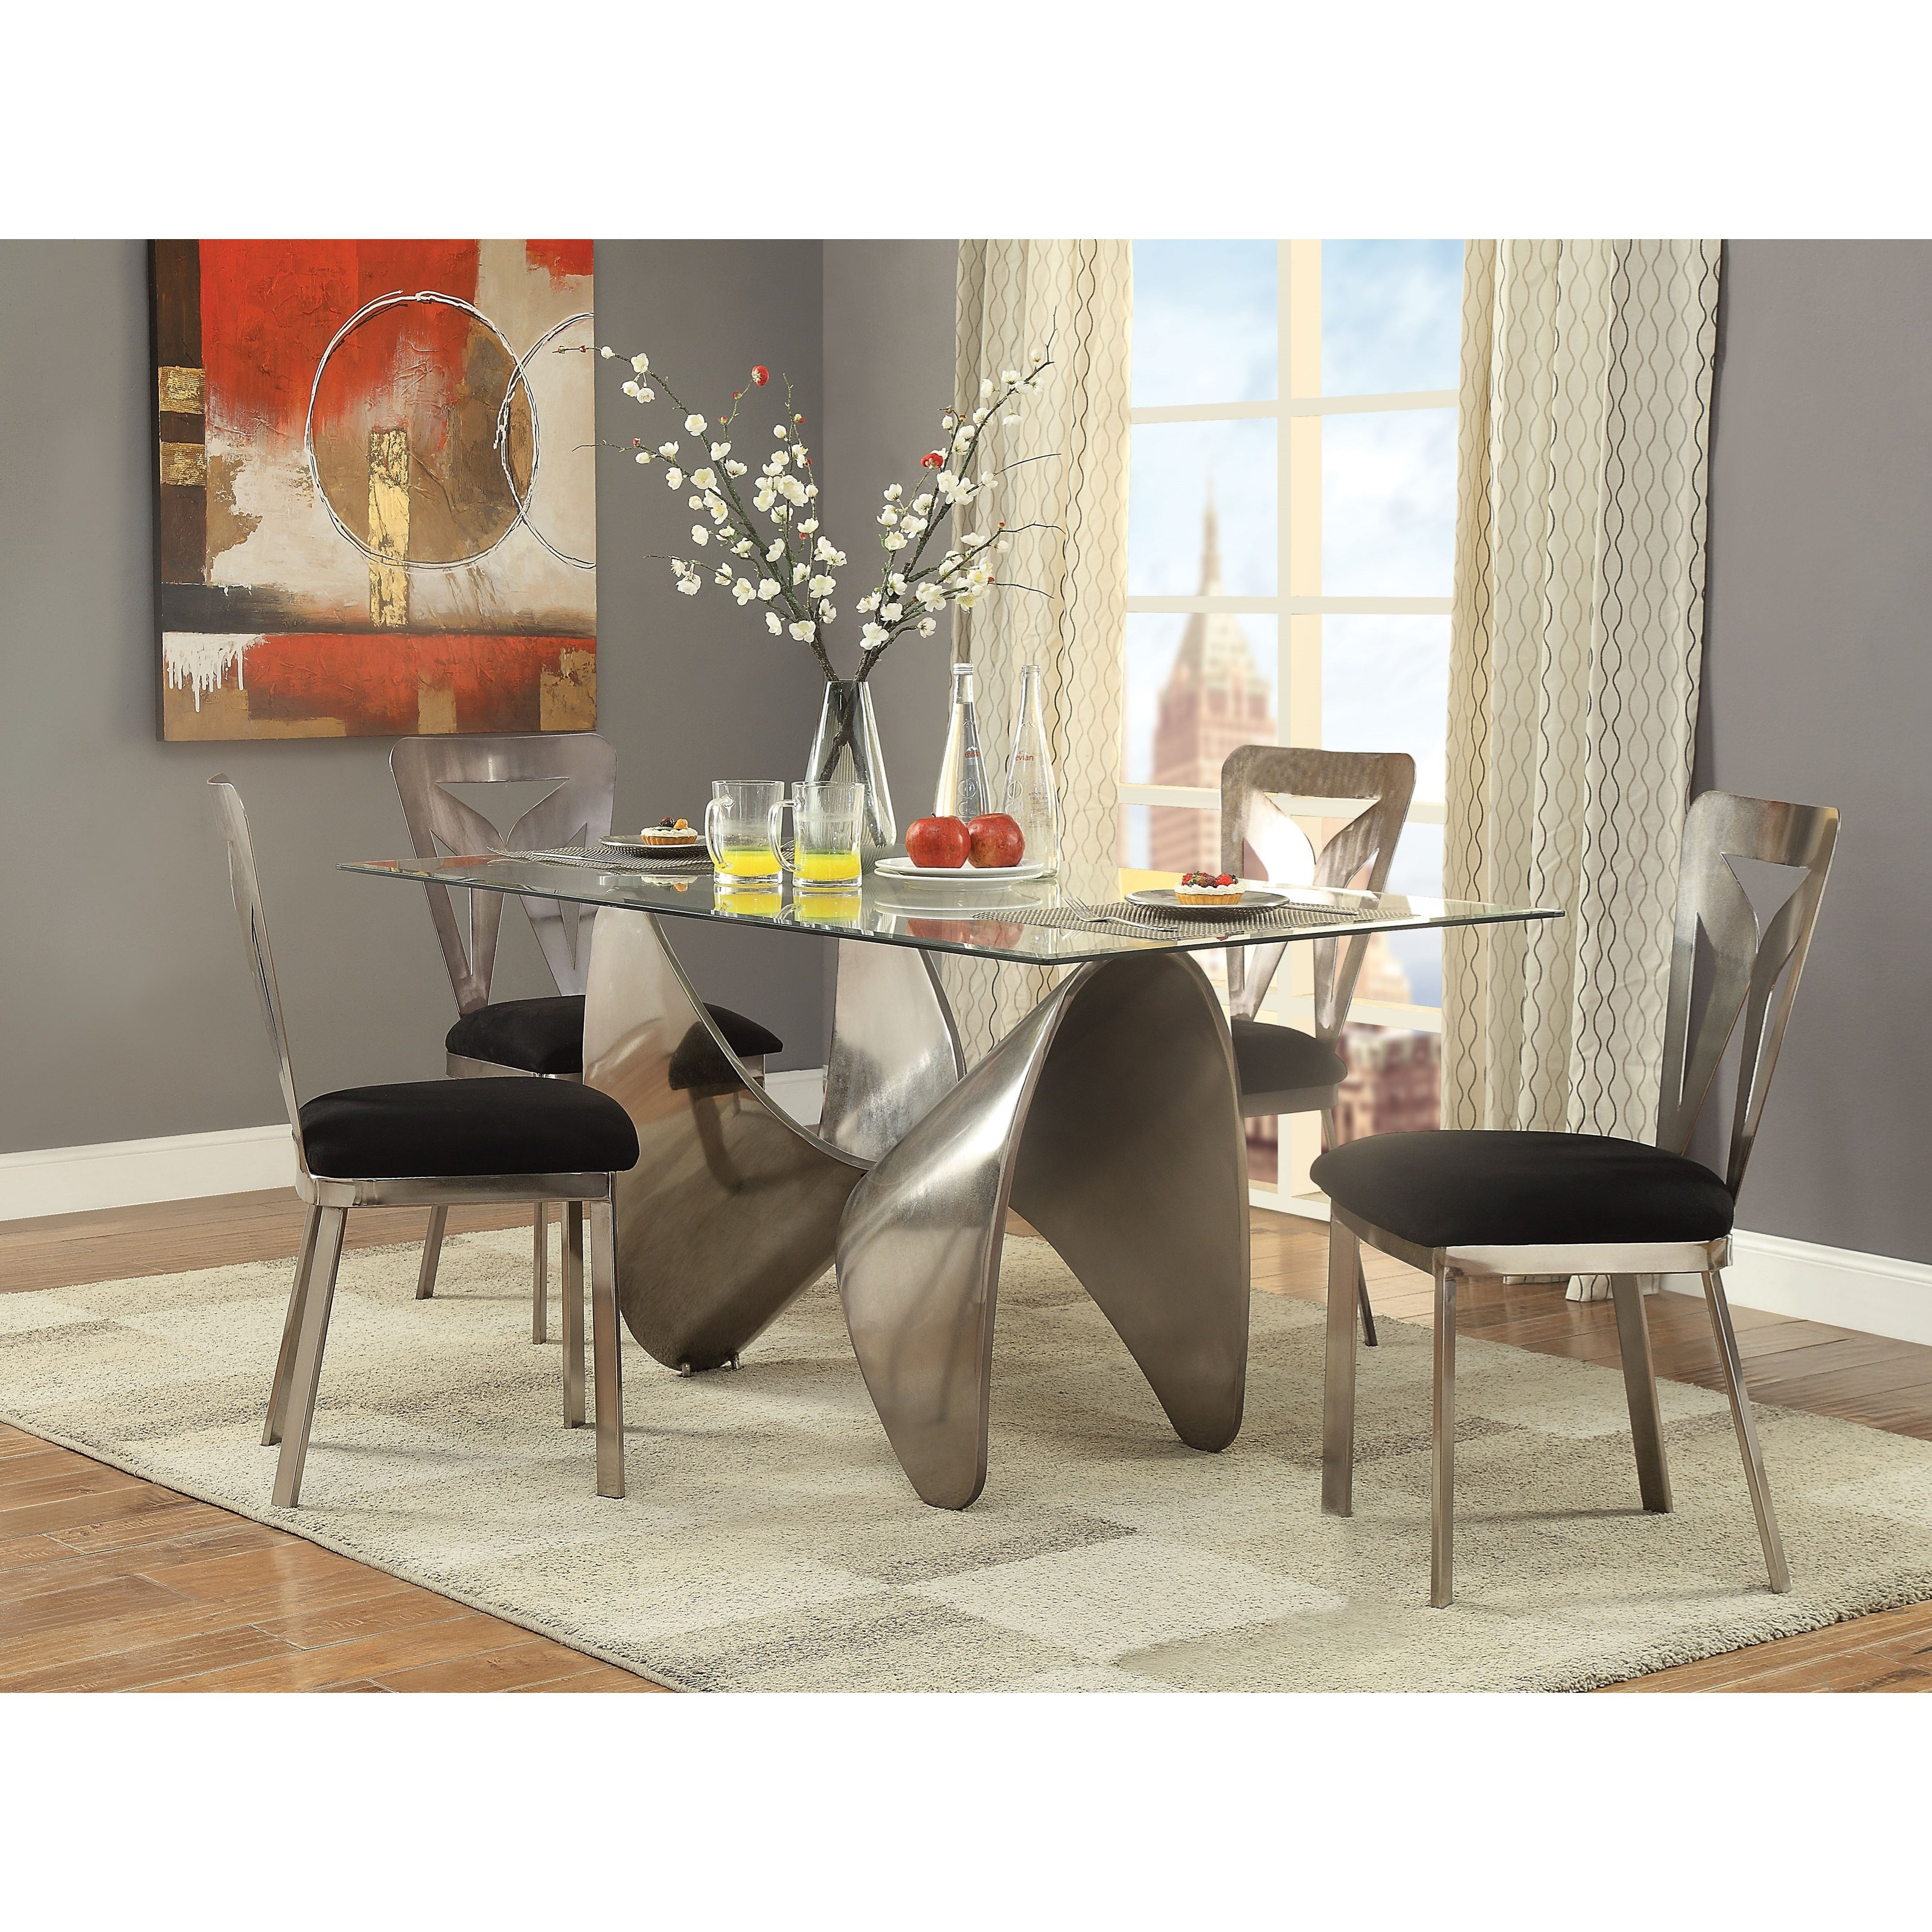 Widforss Dining Table Set with 4 Chairs by Acme Furniture at Carolina Direct